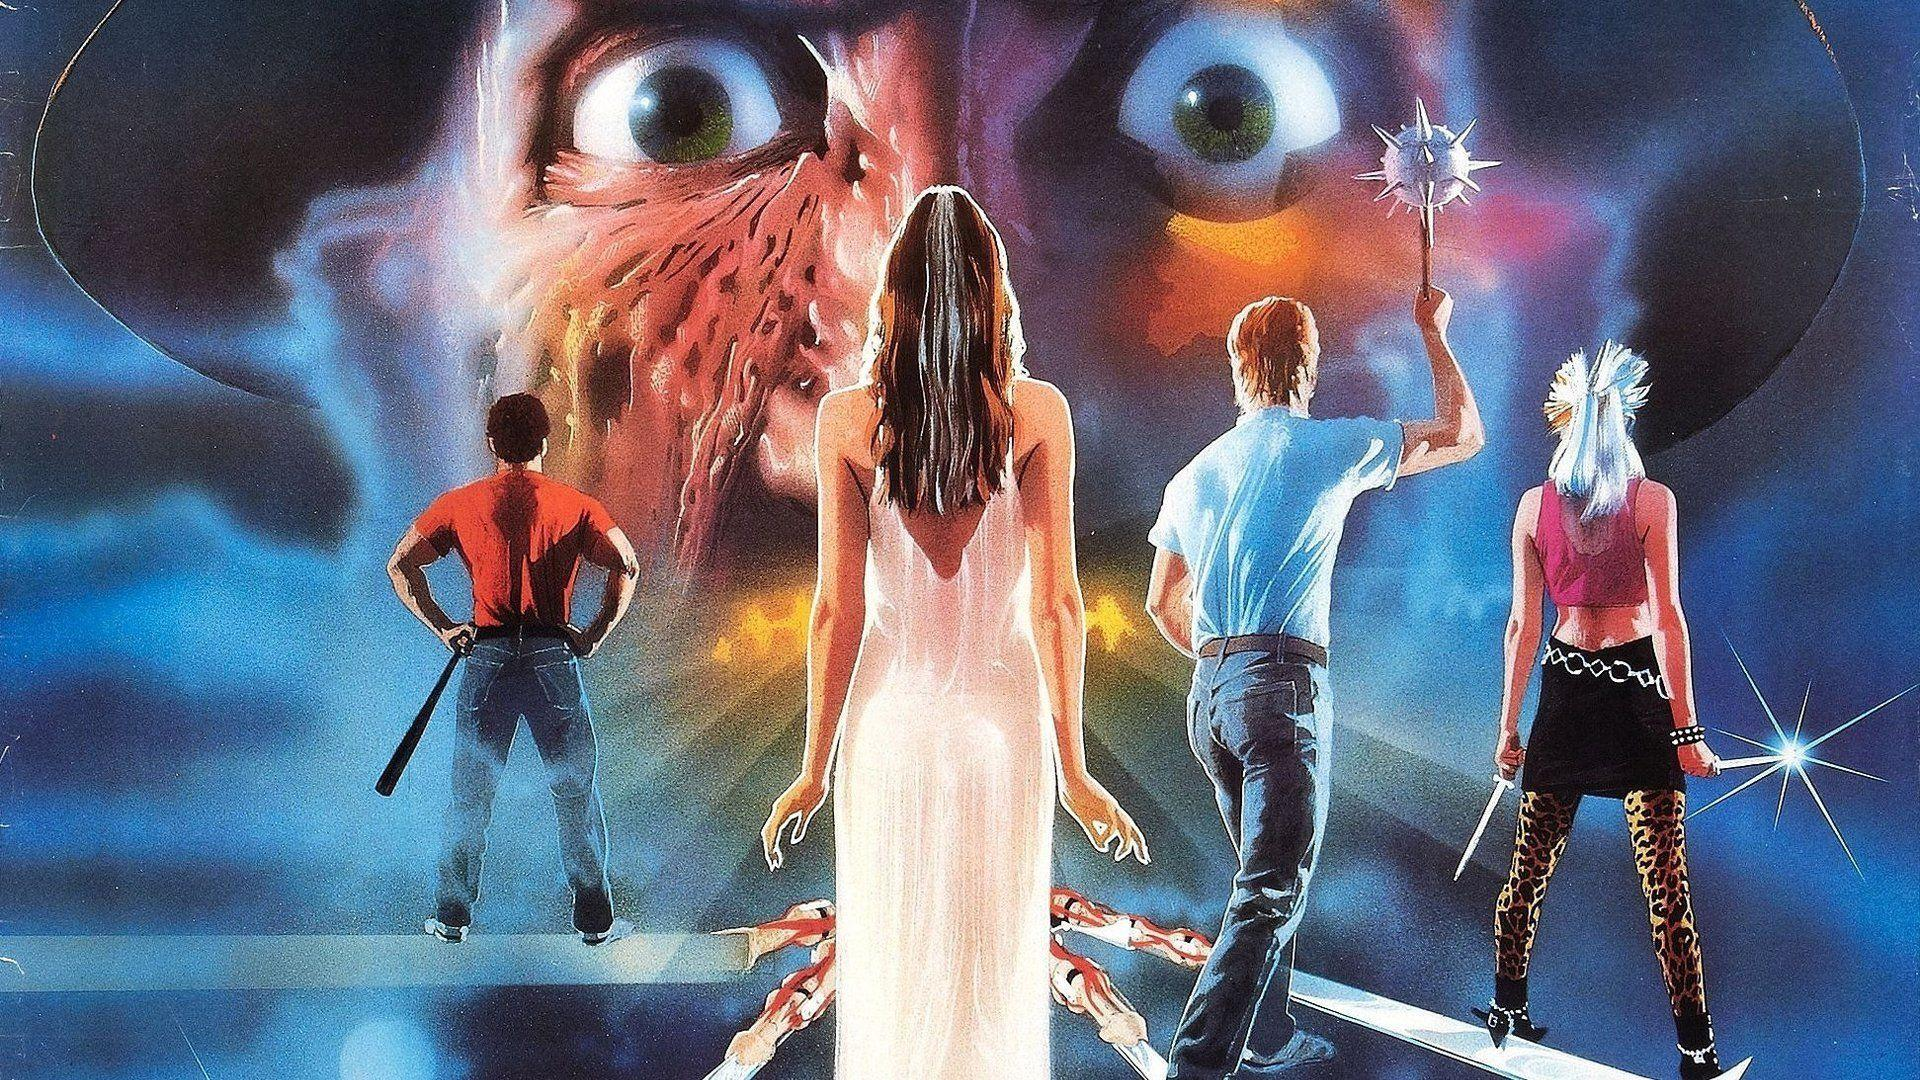 13 A Nightmare On Elm Street 3: Dream Warriors HD Wallpapers